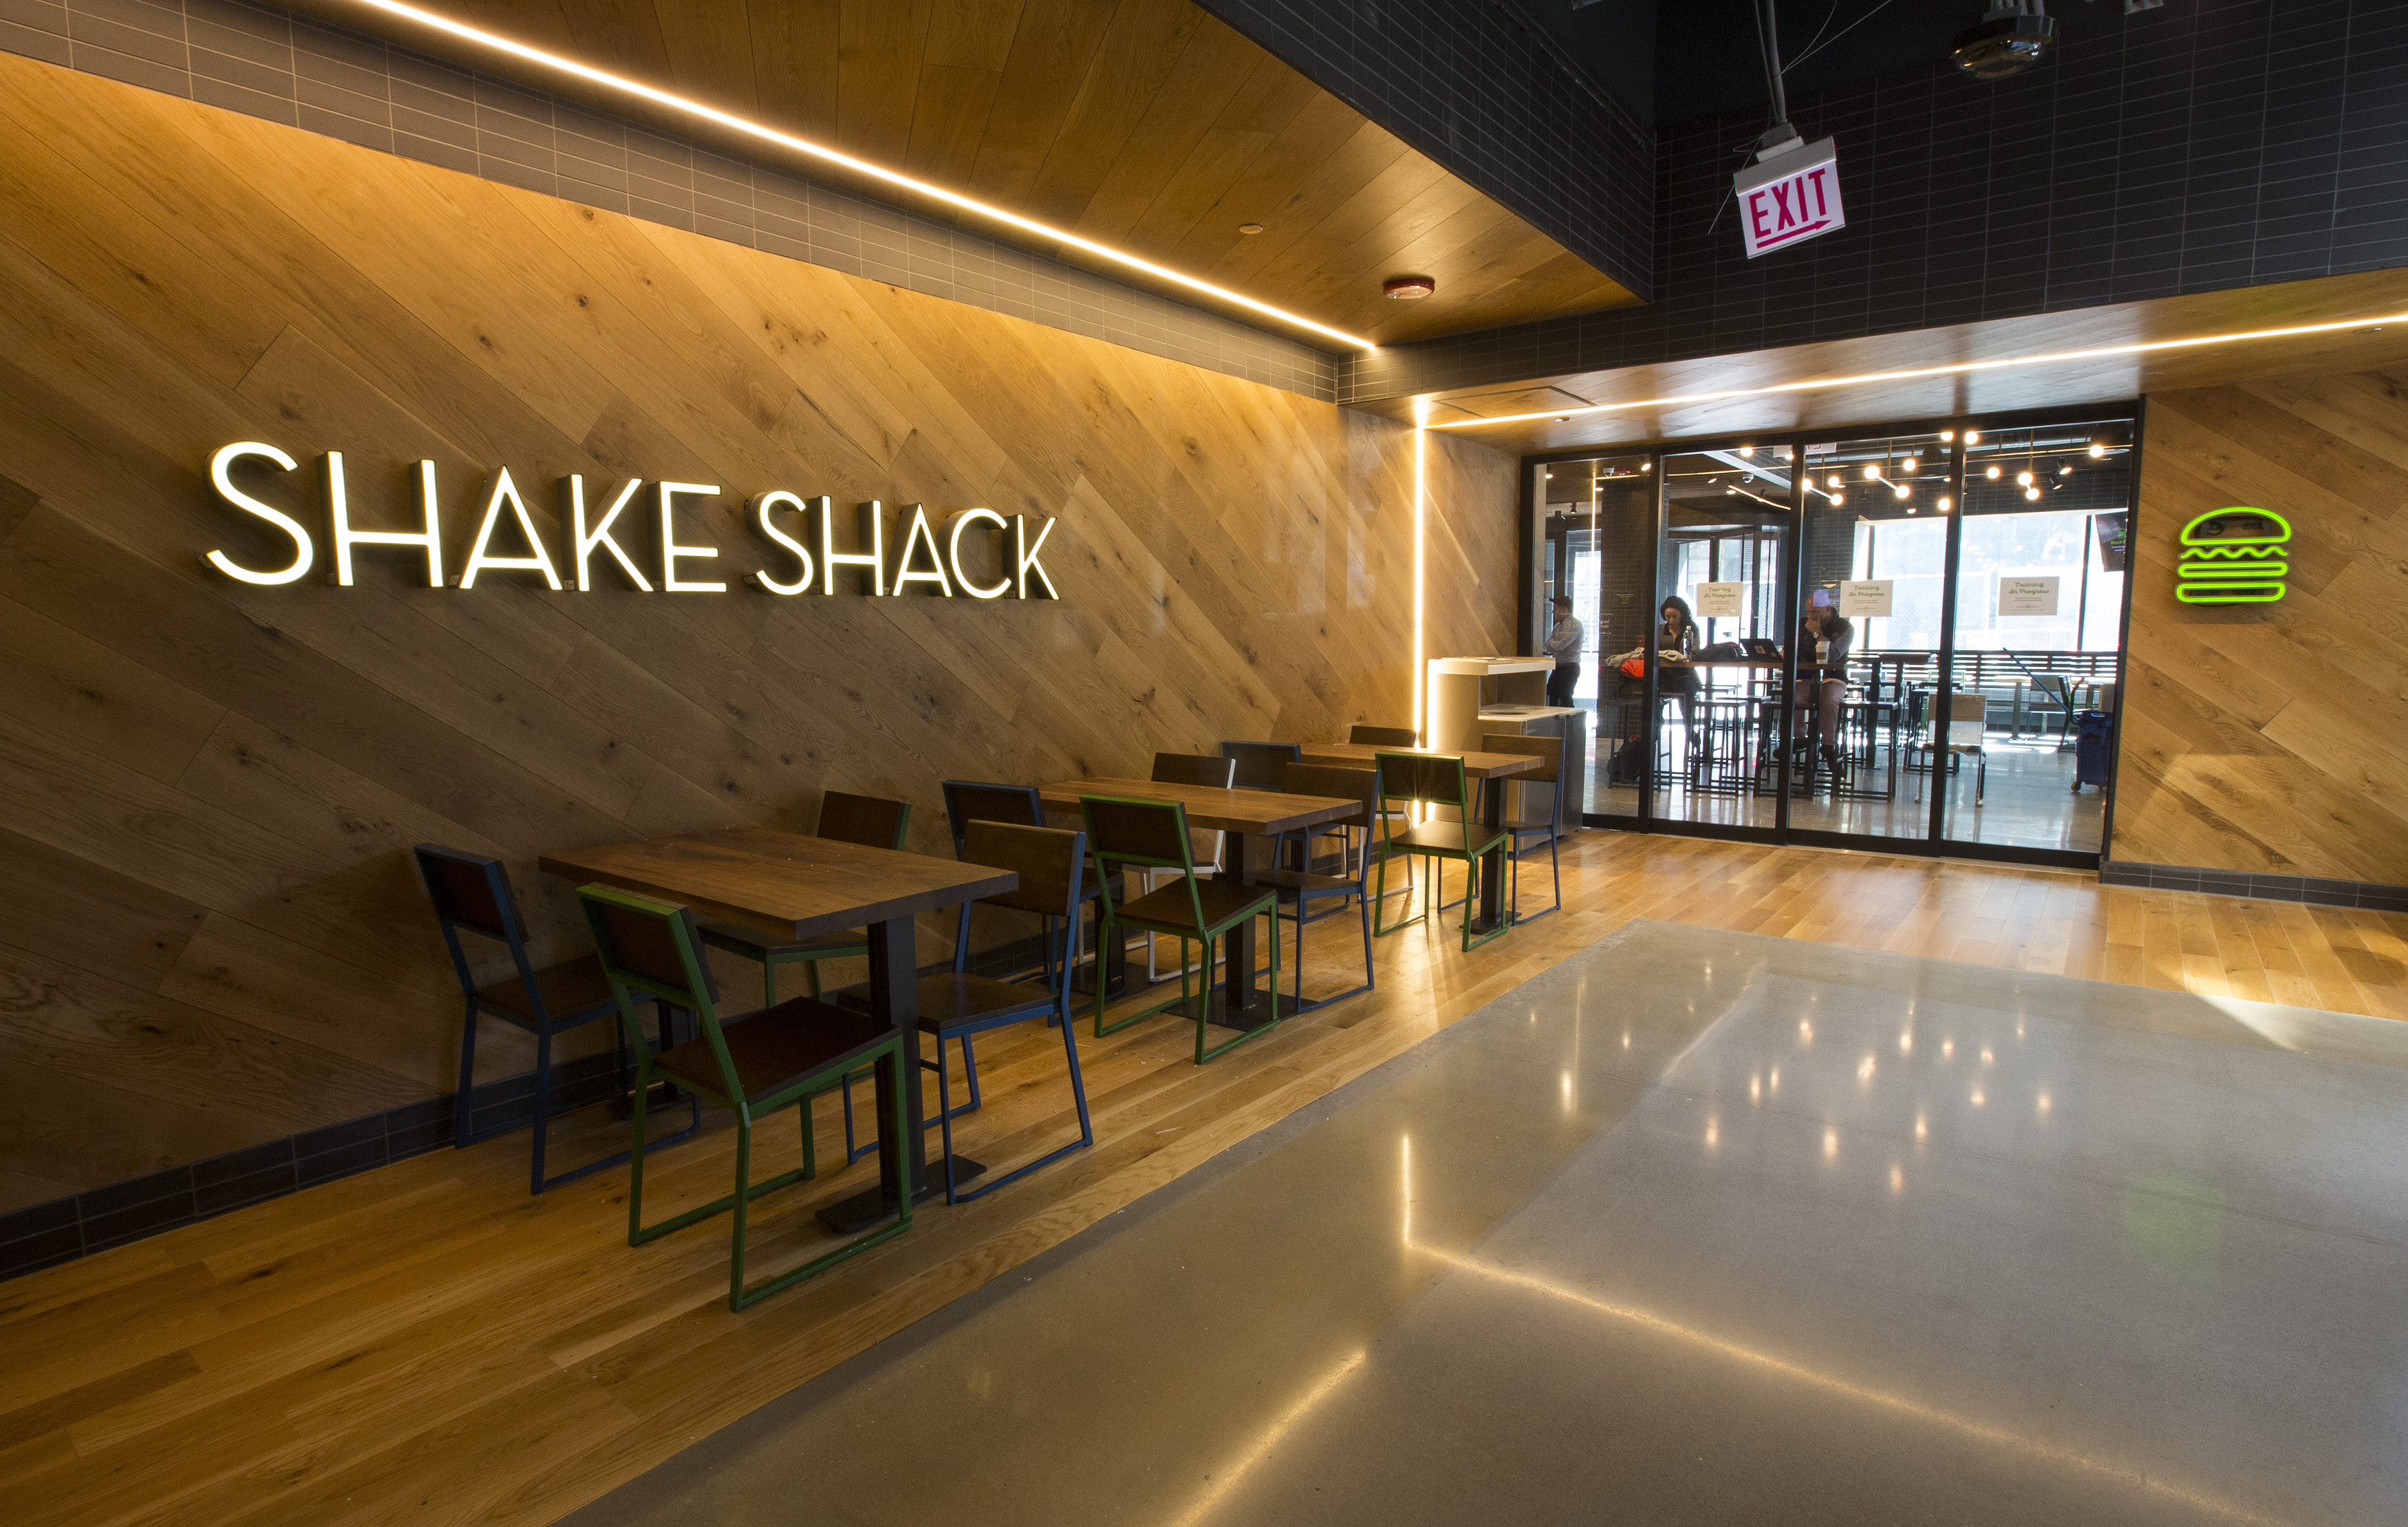 The hallway entrance to a Shake Shack with light wood and neon signs.